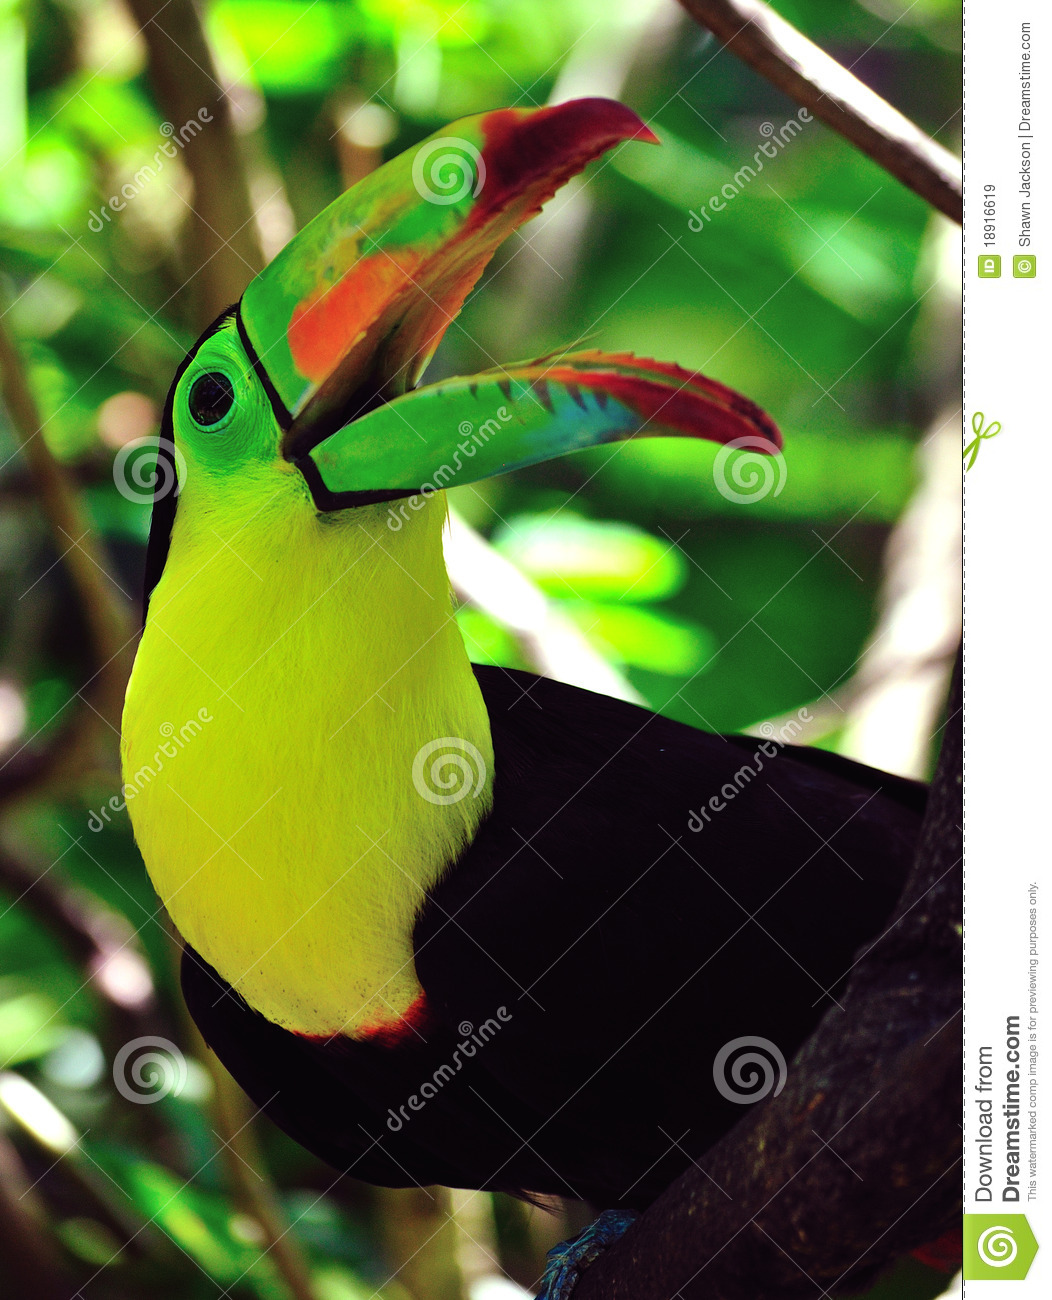 Toucan With Beak Open Royalty Free Stock Images - Image ...